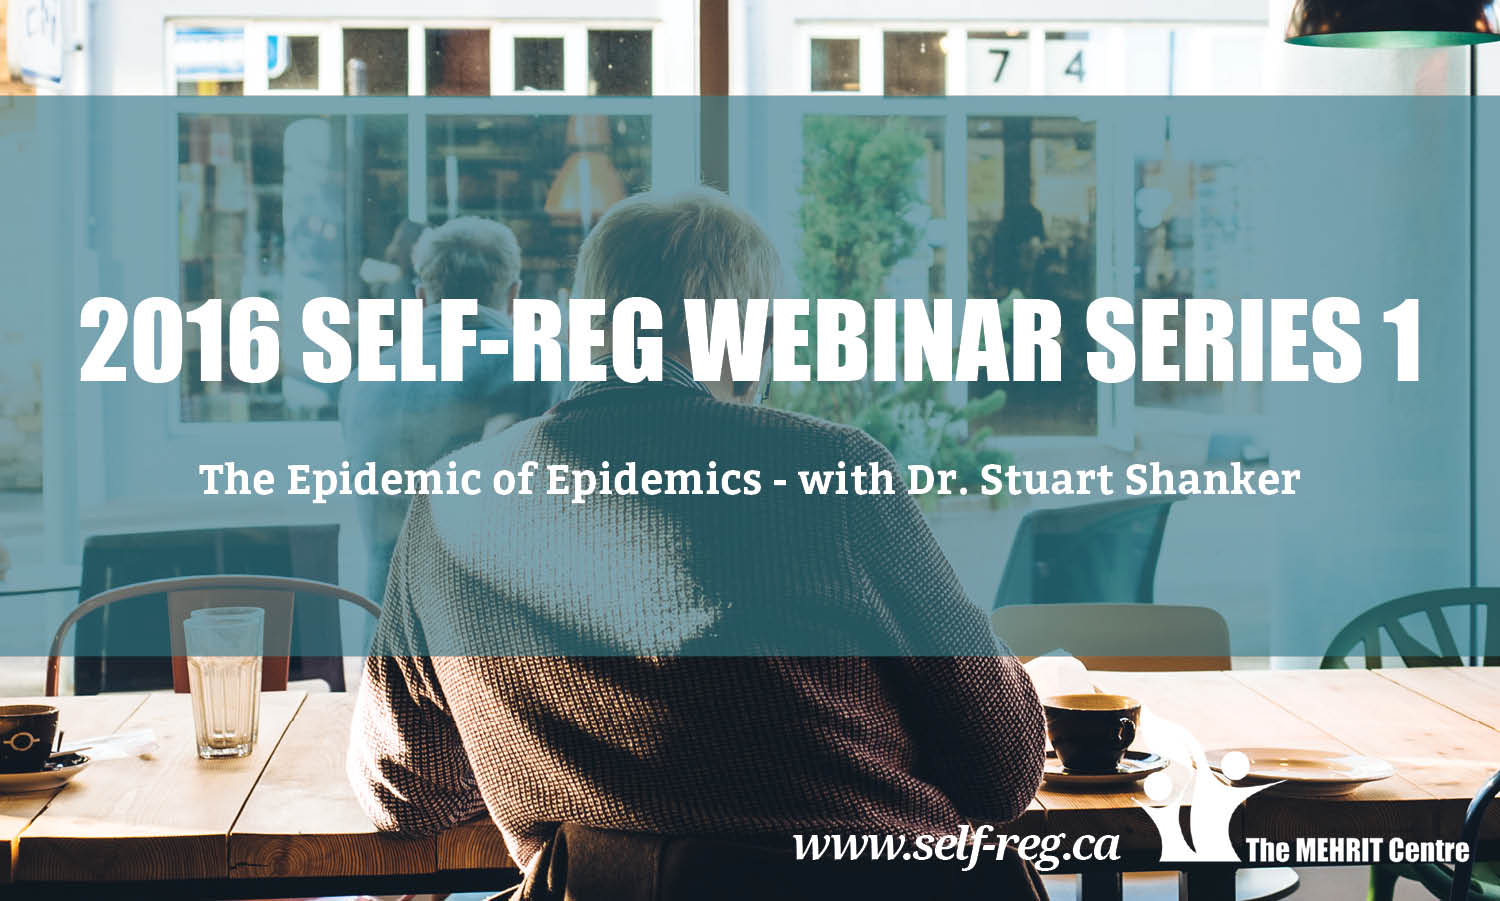 Self-Reg Webinars 2016 - Series 1 with Dr. Stuart Shanker: Self-Reg and the Epidemic of Epidemics - Individual webinars